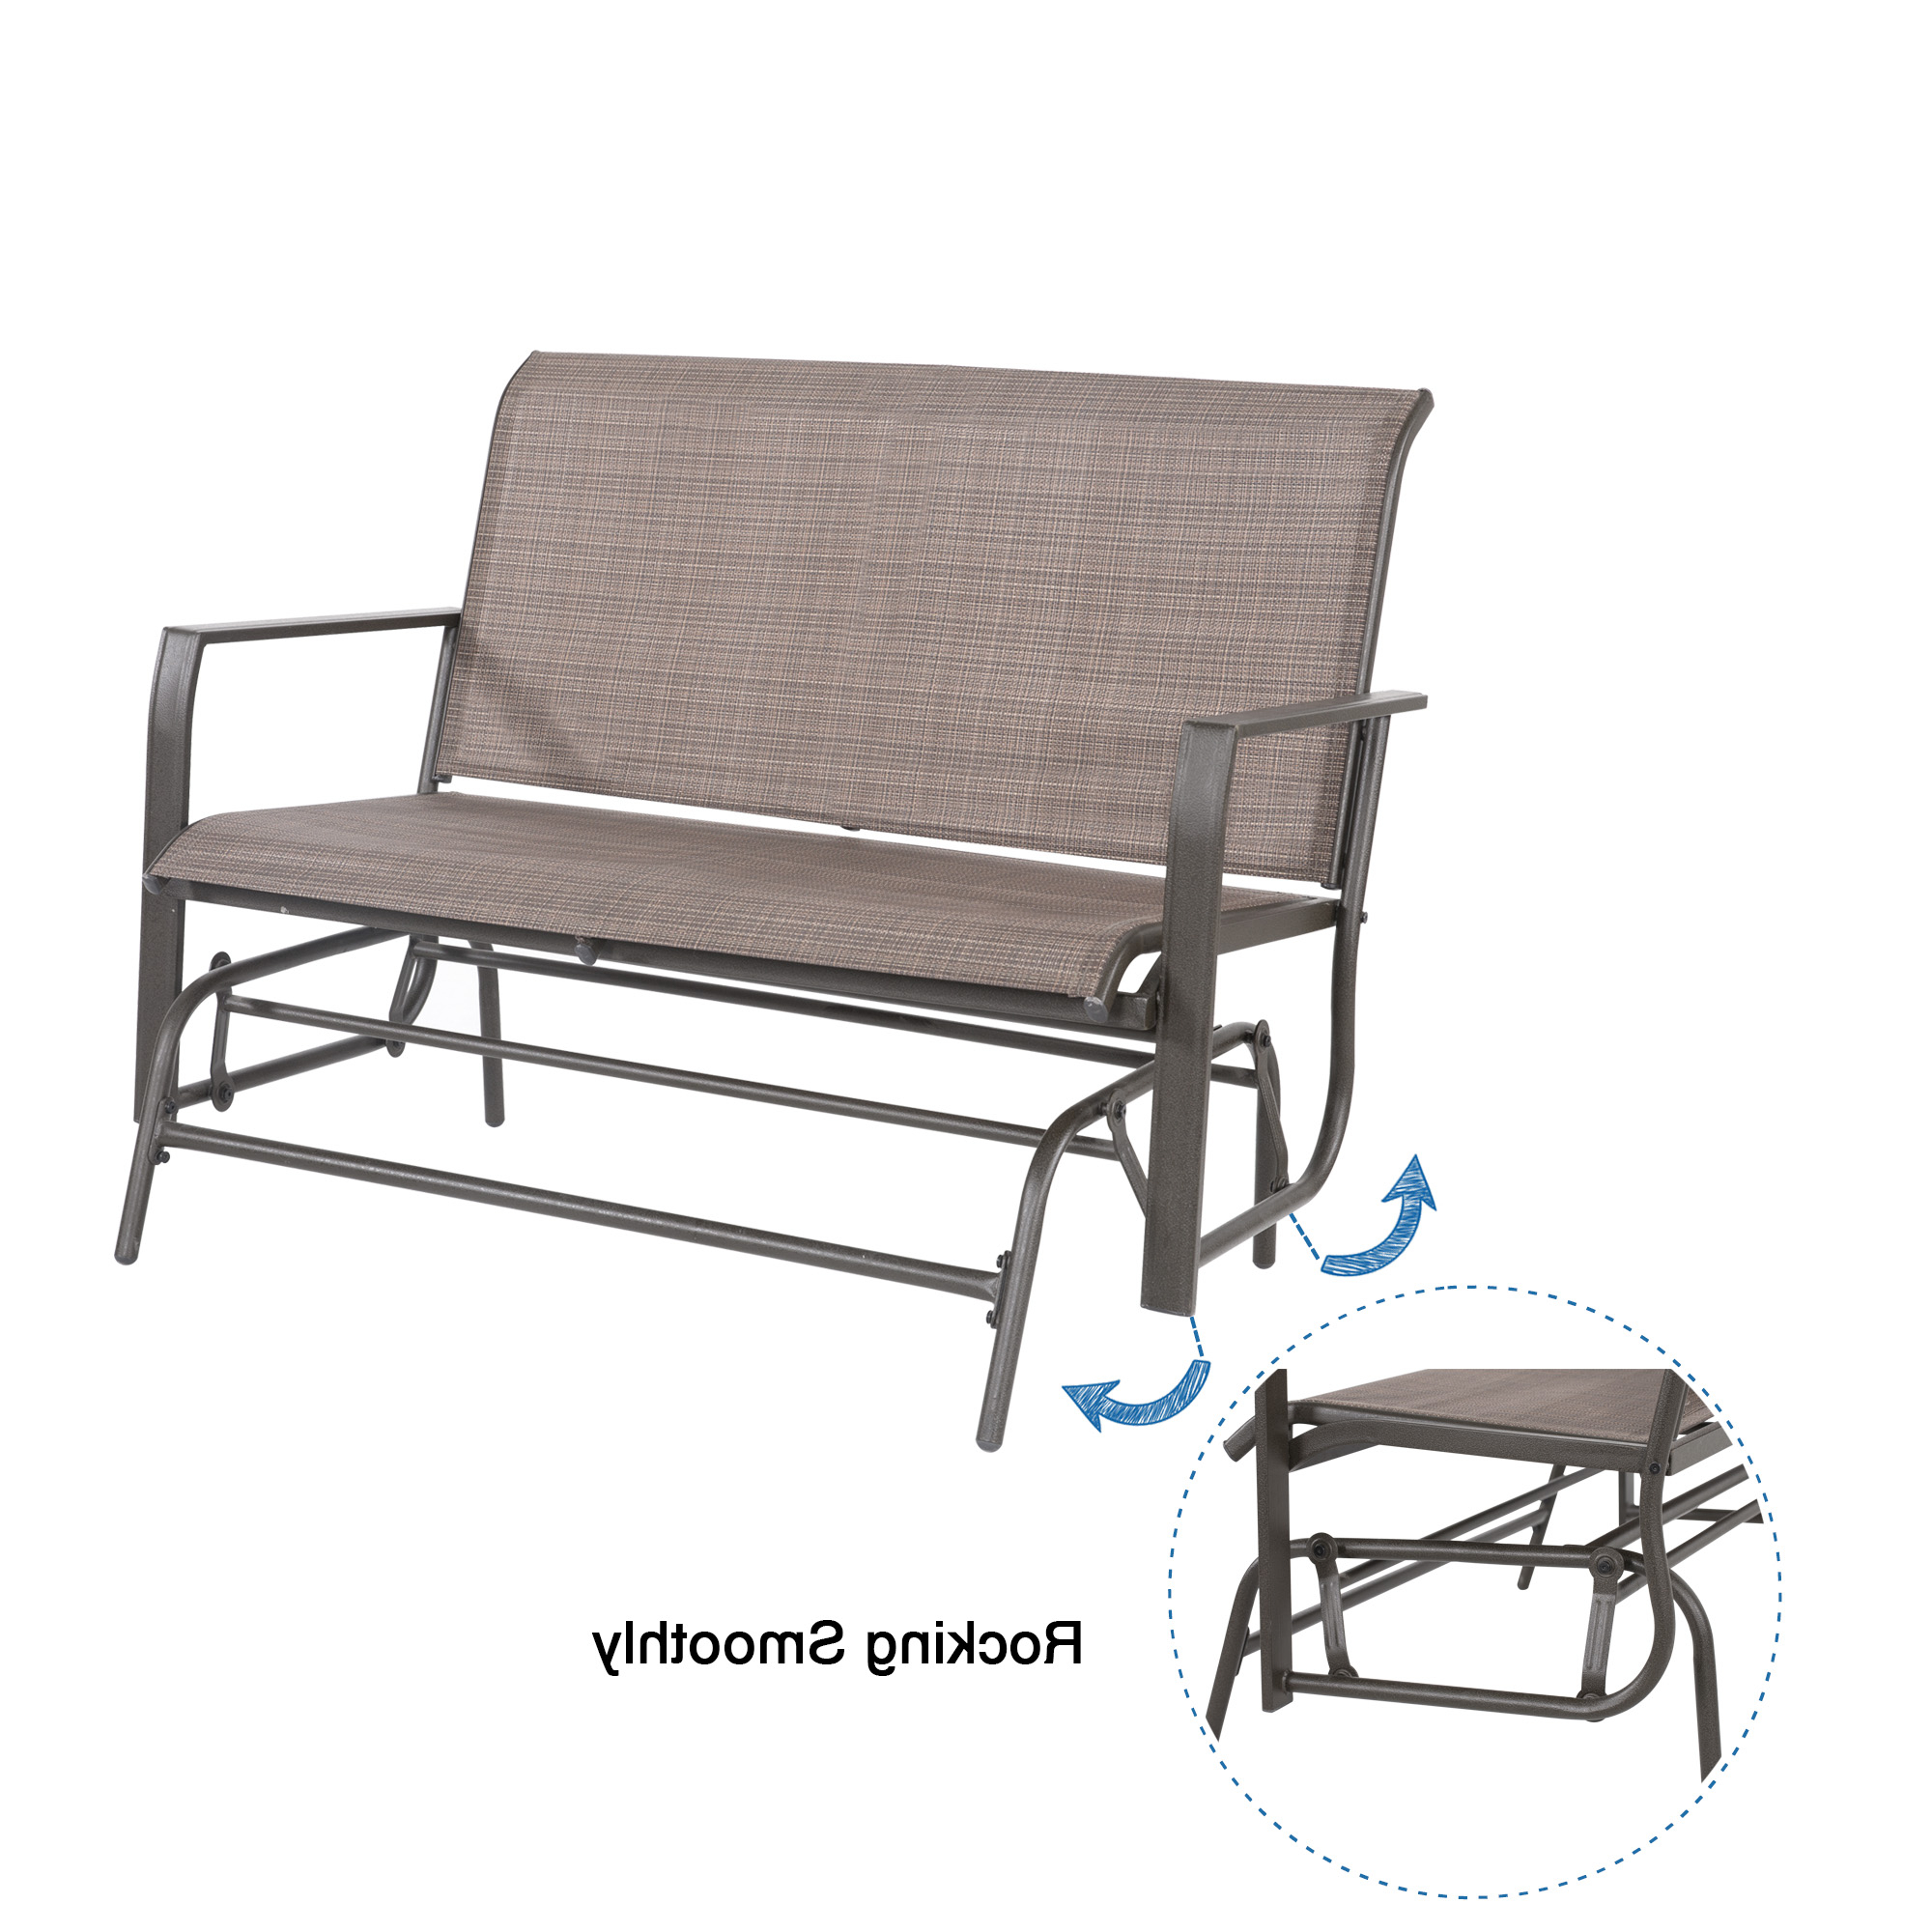 2 Person Loveseat Chair Patio Porch Swings With Rocker Pertaining To Preferred Cloud Mountain Patio Glider Bench Outdoor 2 Person Swing (View 15 of 25)